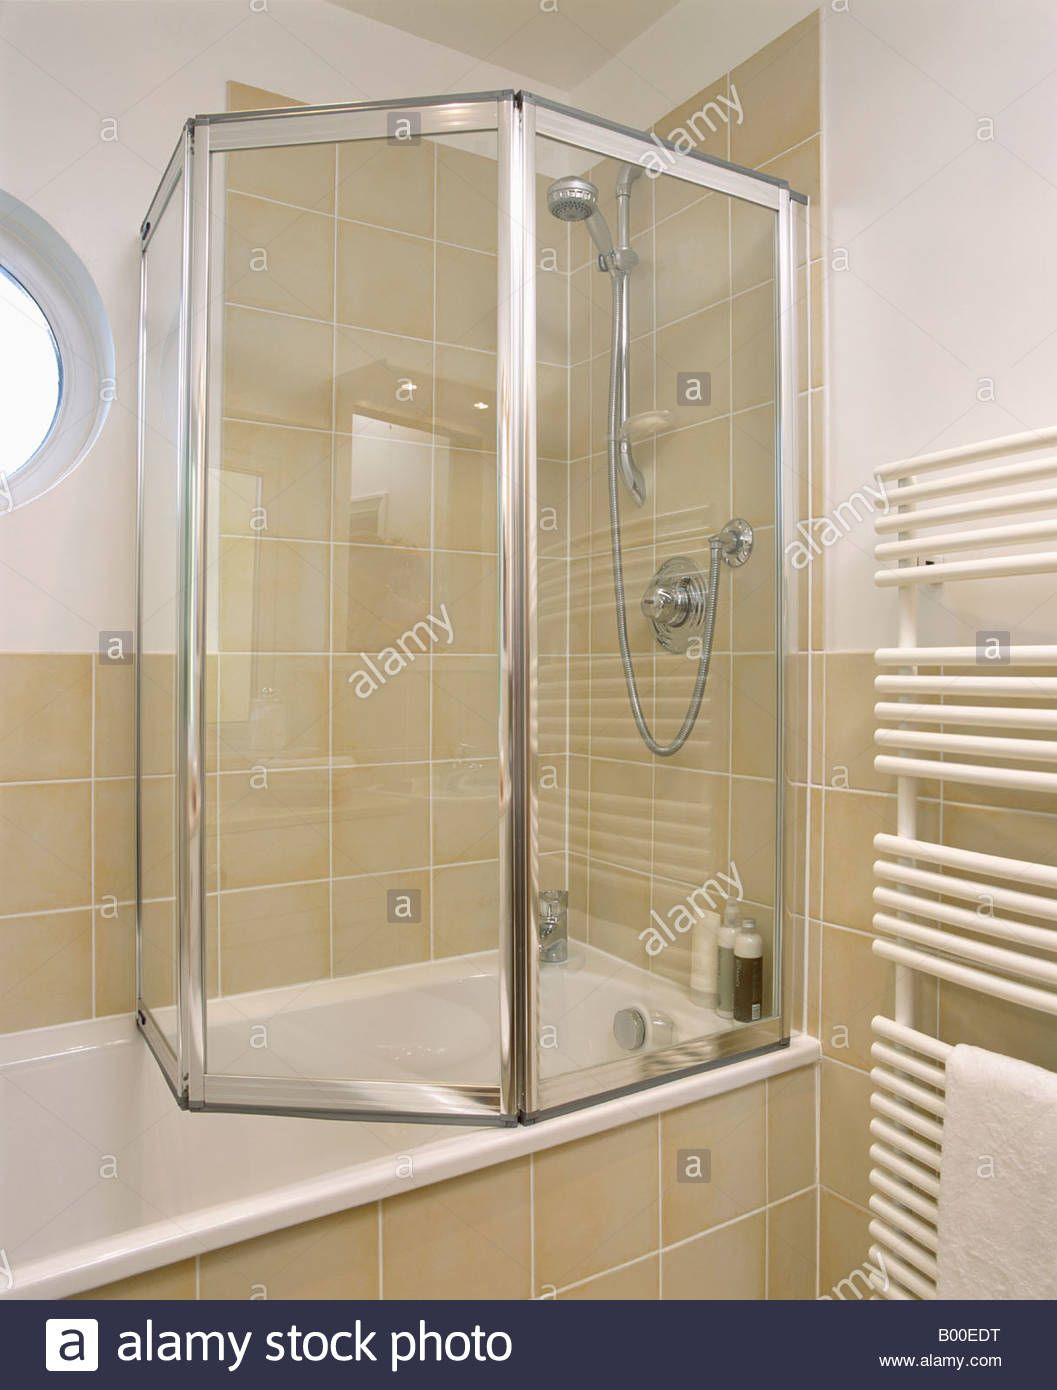 Stock Photo Folding Glass Shower Doors Bath Modern Bathroom Bathtub